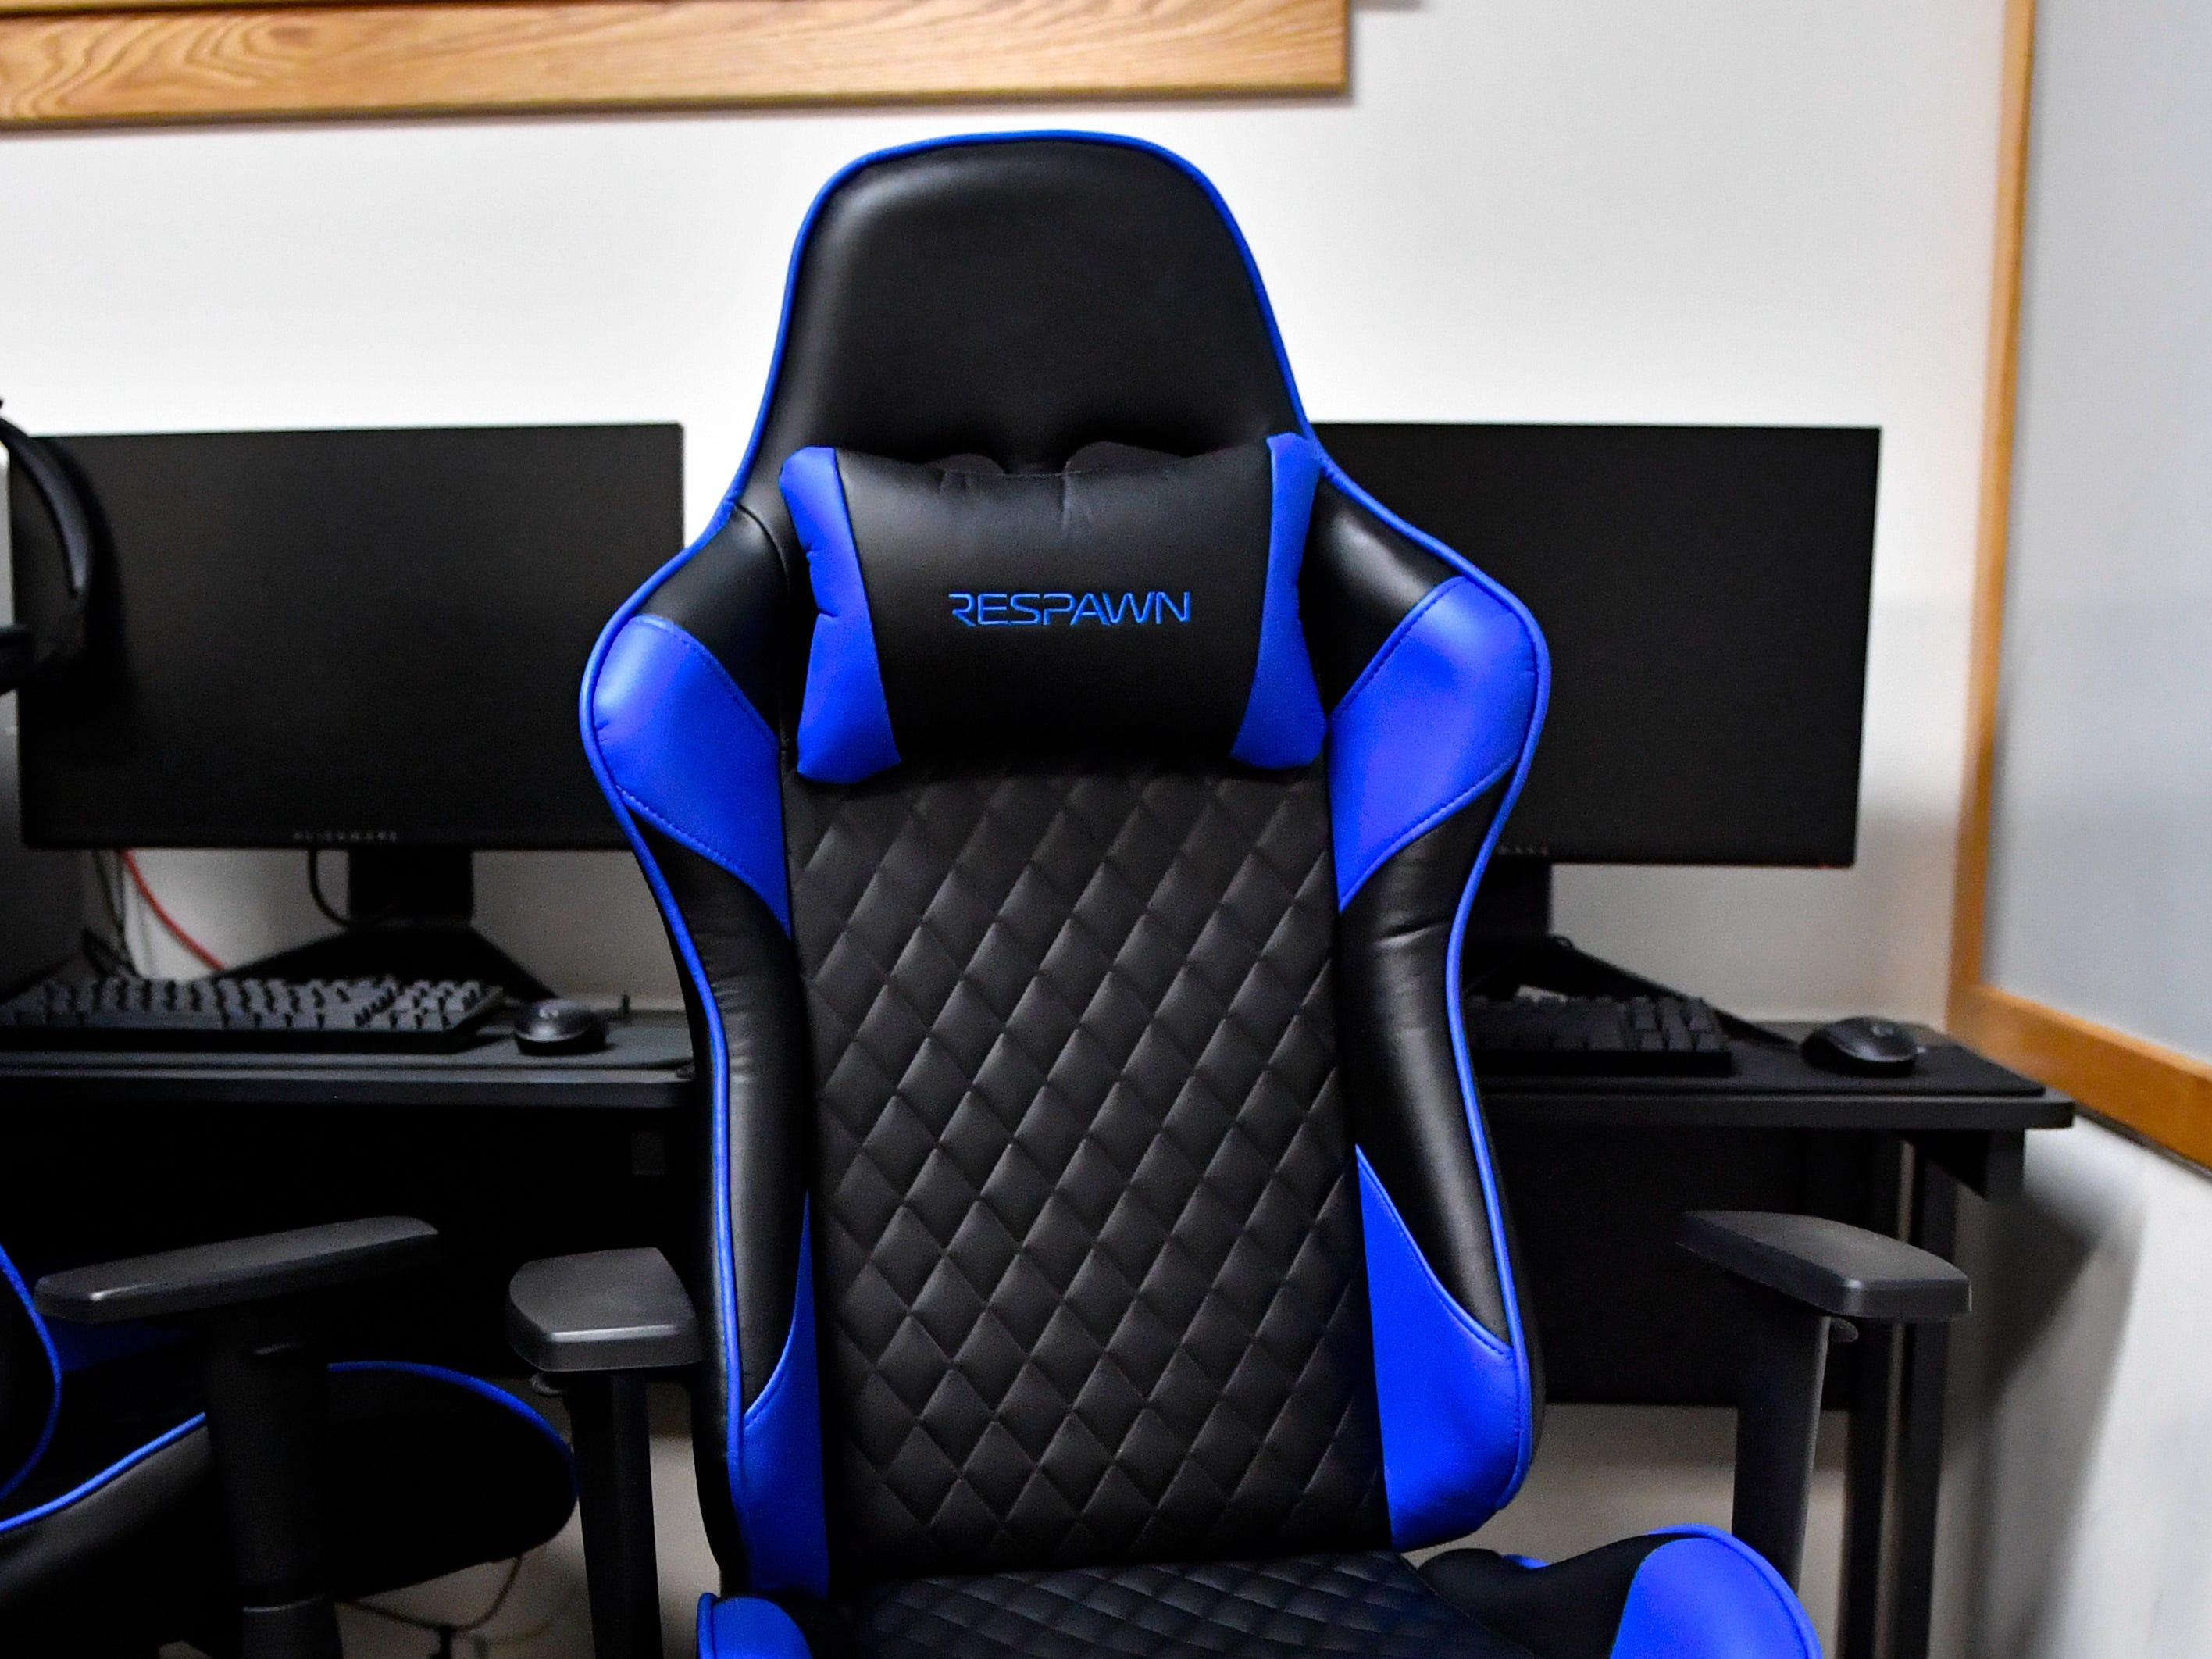 These chairs are designed for Esports players. They provide the comfort needed for long matches.